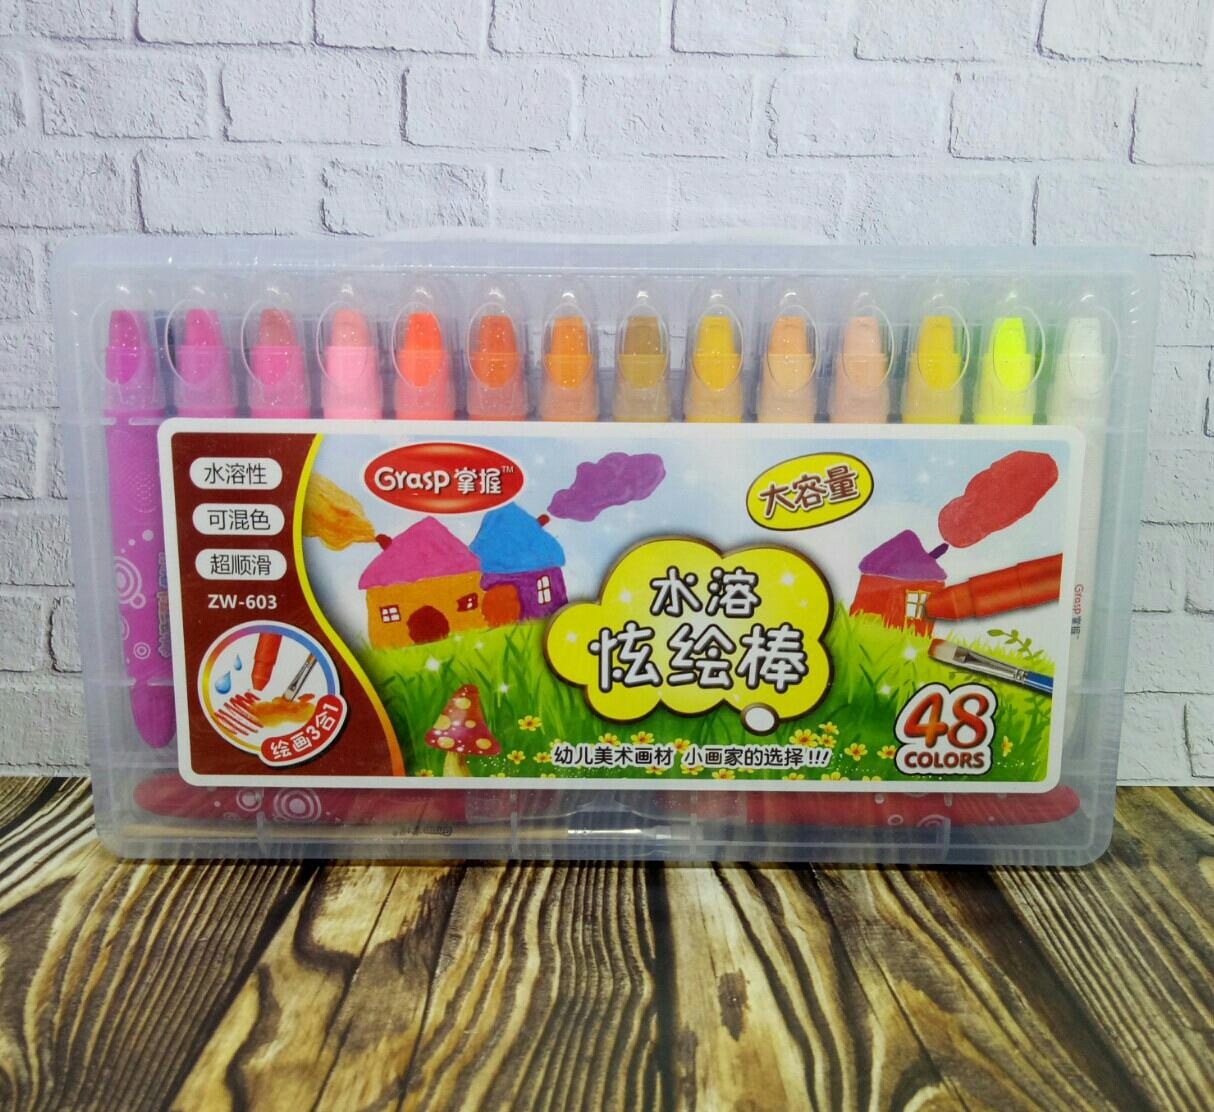 Crayon 48 Warna Grasp By Atk Jaya Store.